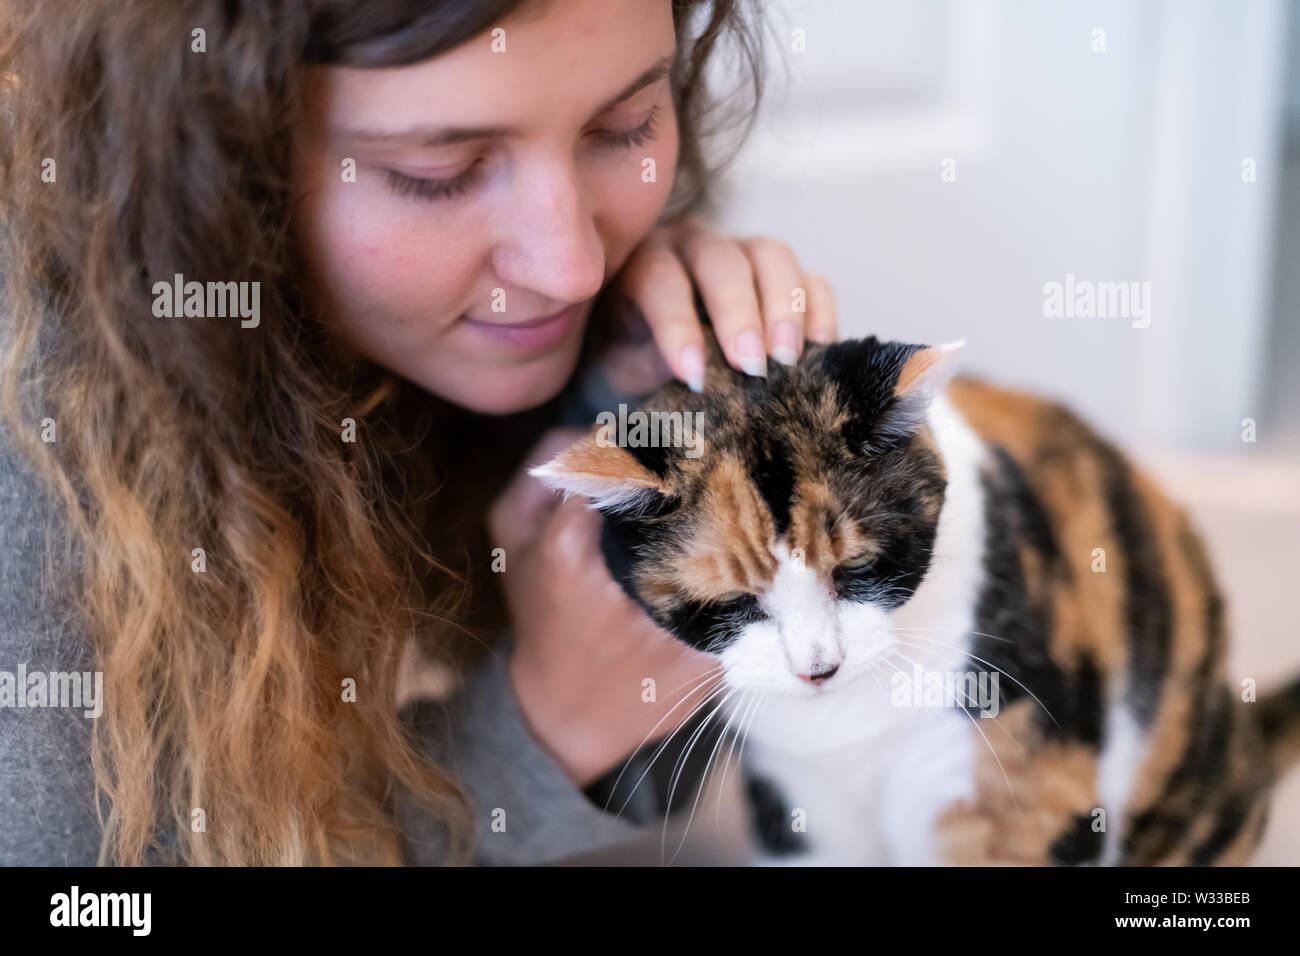 Closeup portrait of happy smiling young woman bonding with calico cat pet, petting and touching scratching head, showing affection - Stock Image